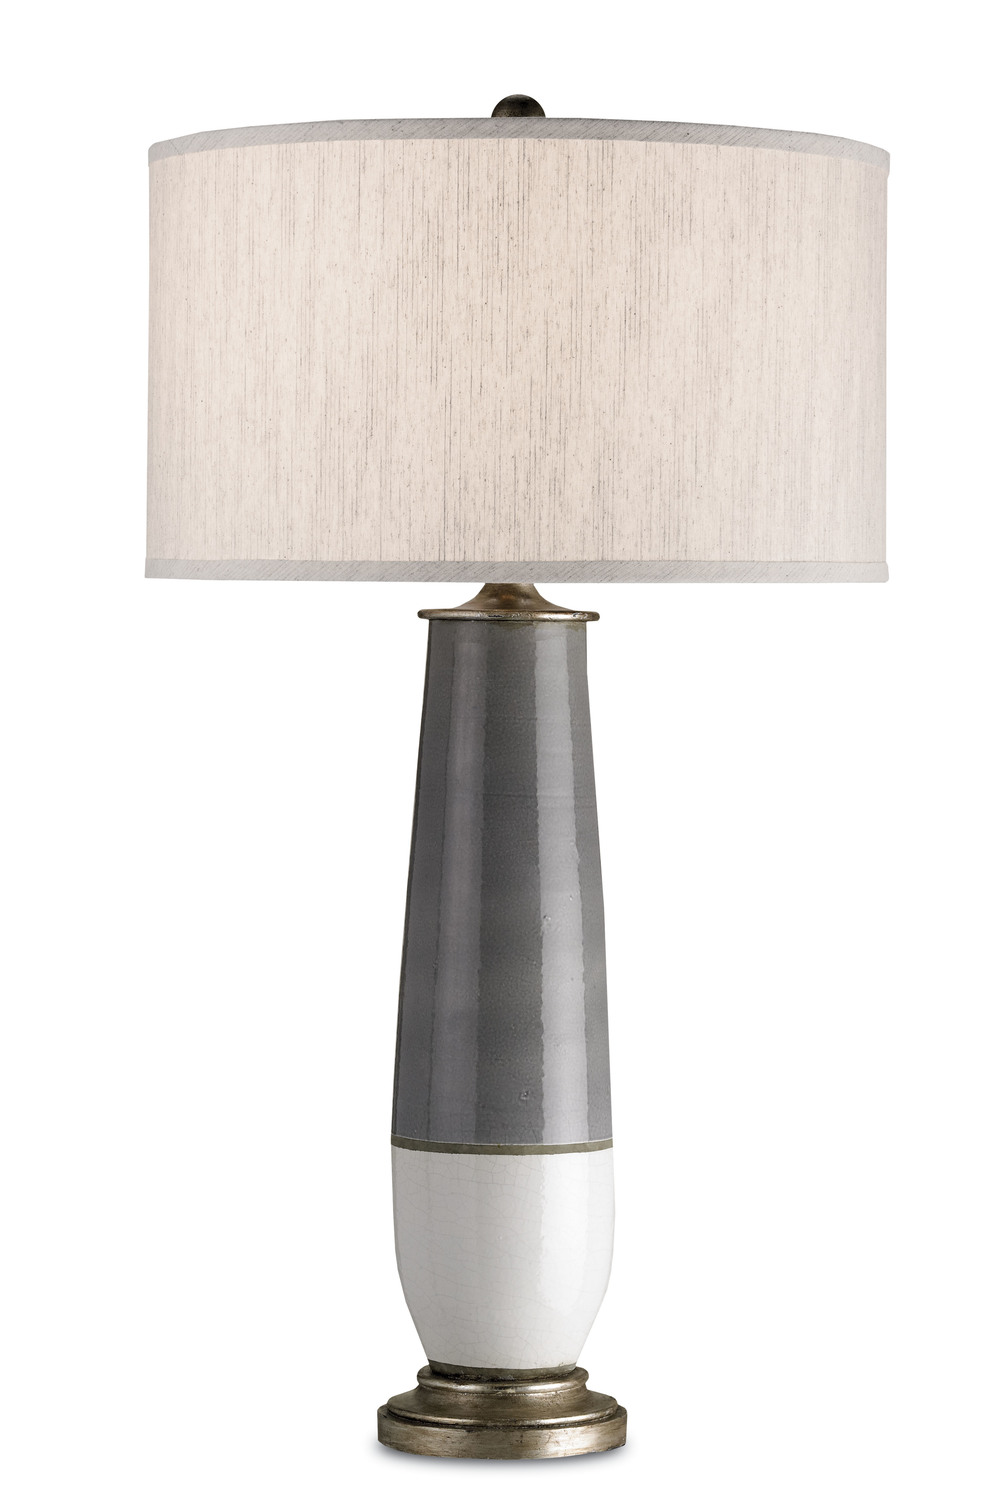 Currey & Company - Urbino Table Lamp